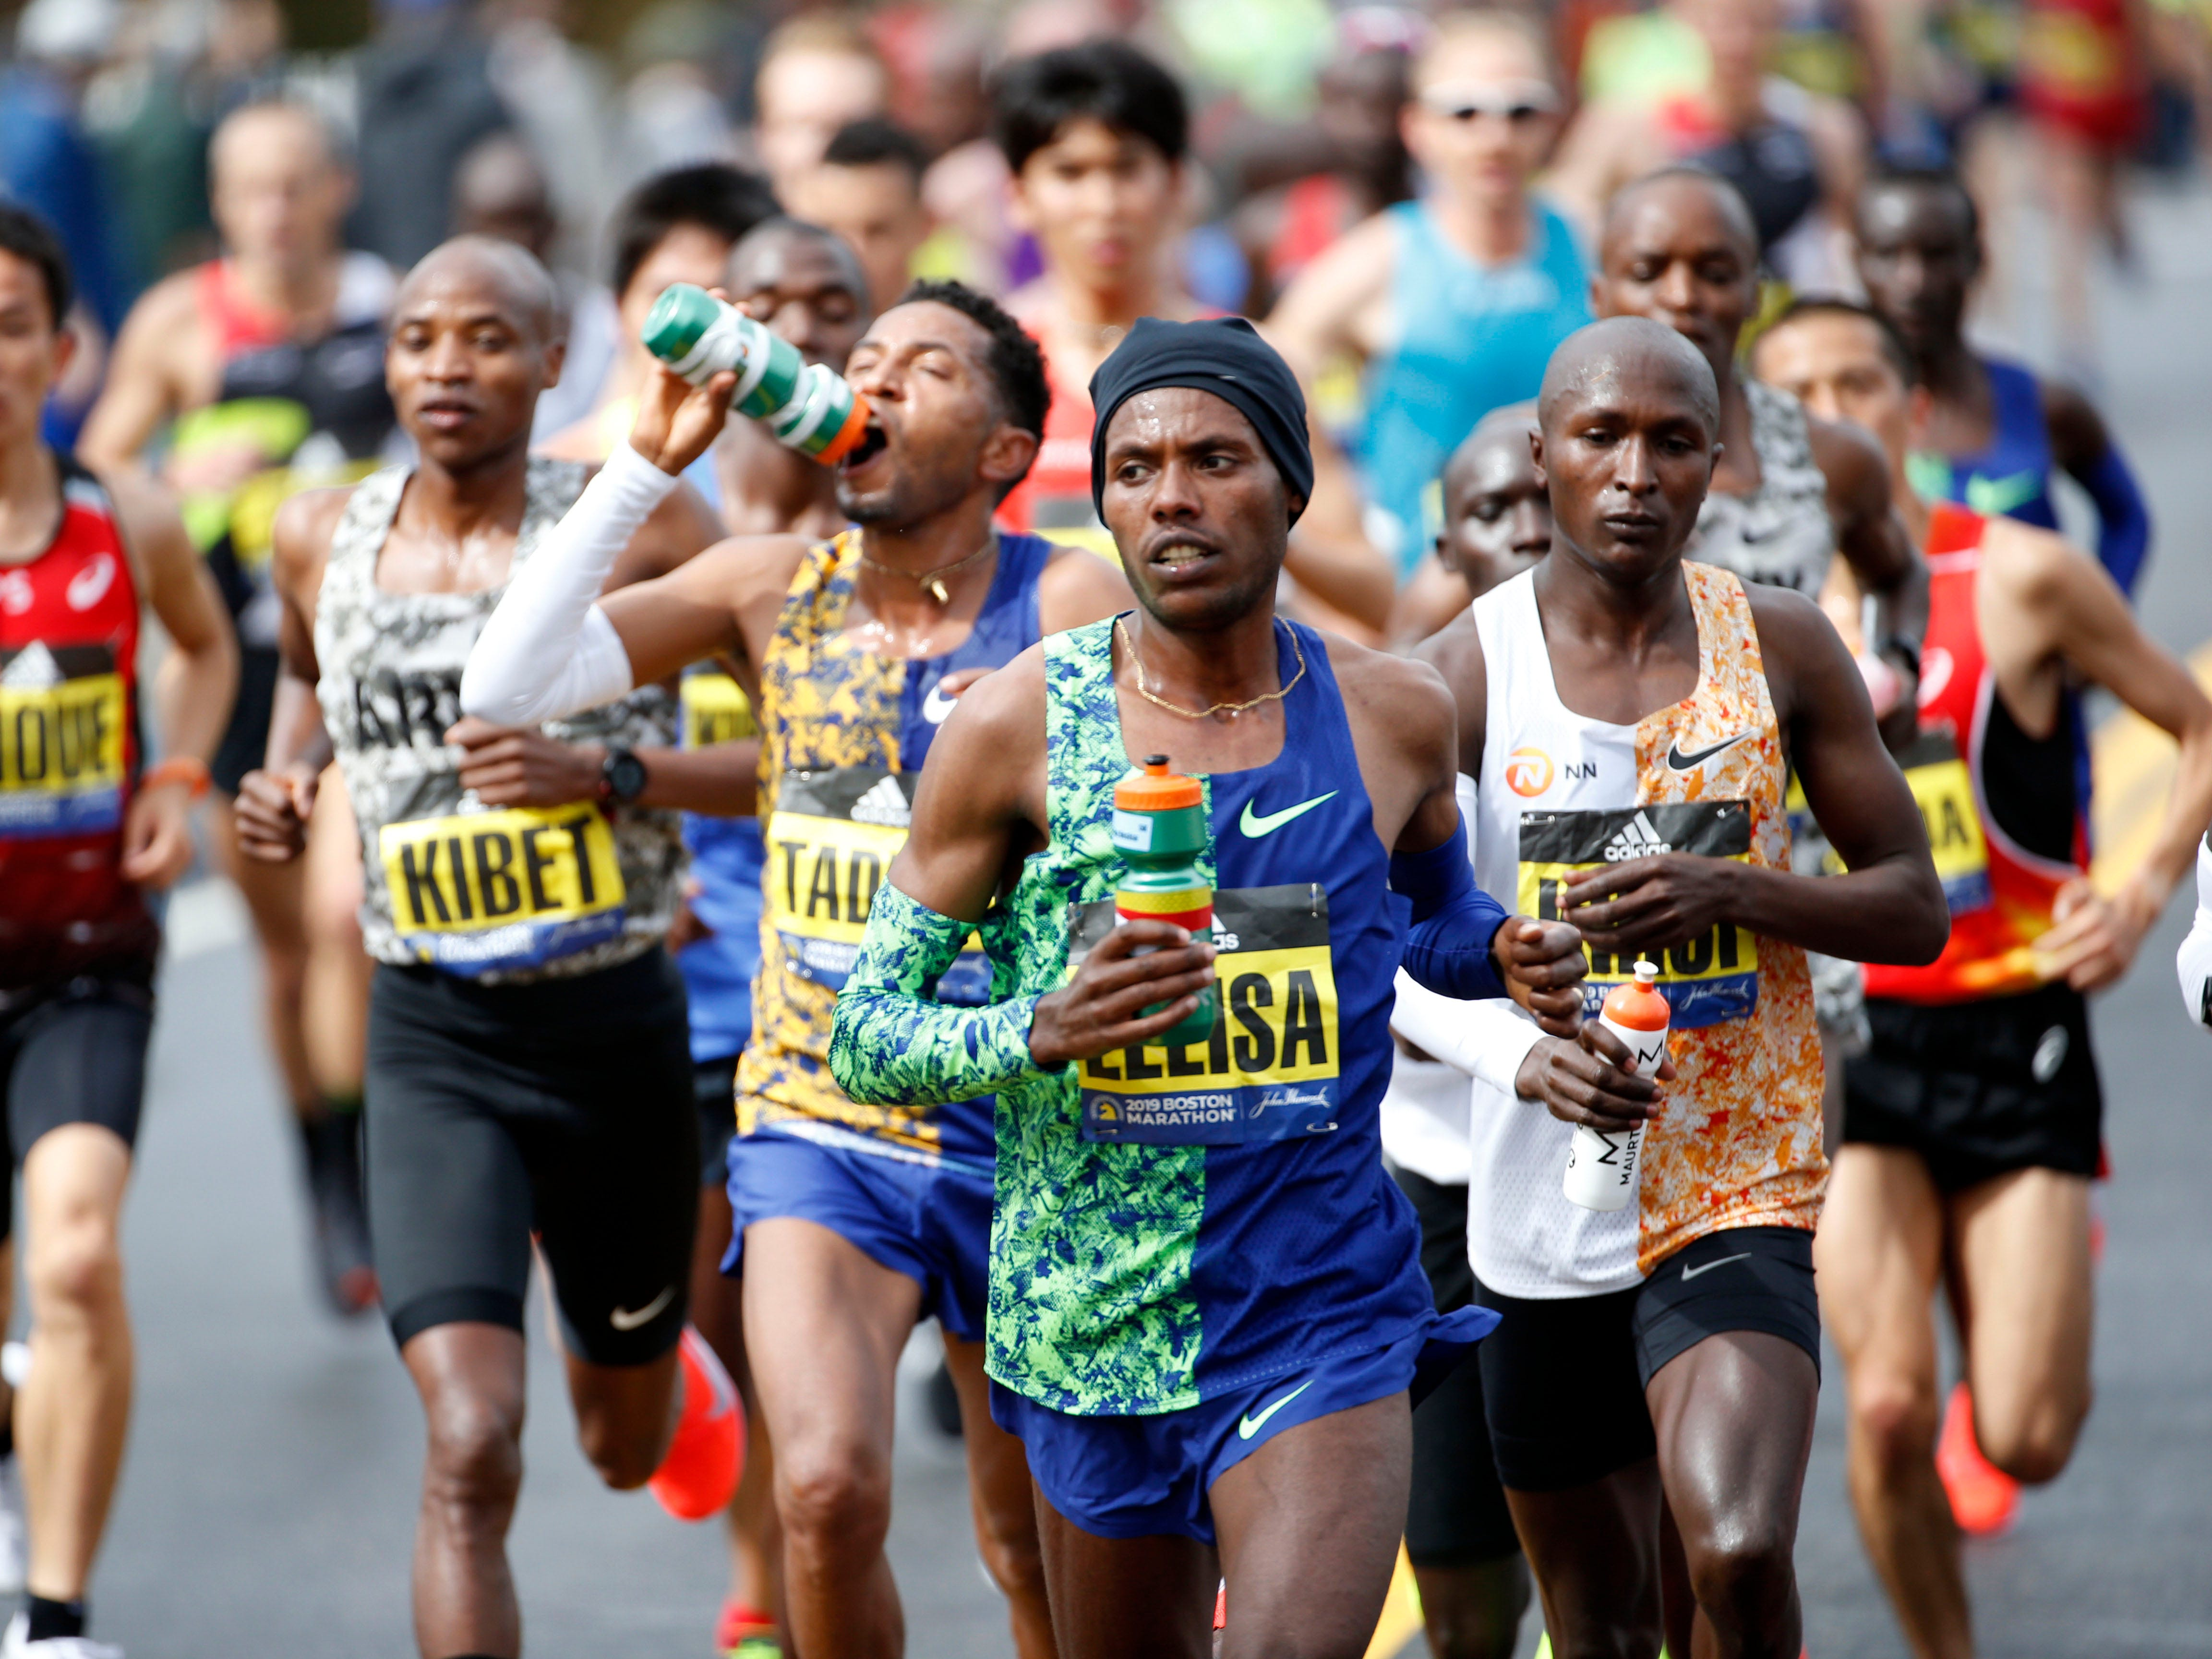 Lelisa Desisa out in front in the elite men's group during the 2019 Boston Marathon.